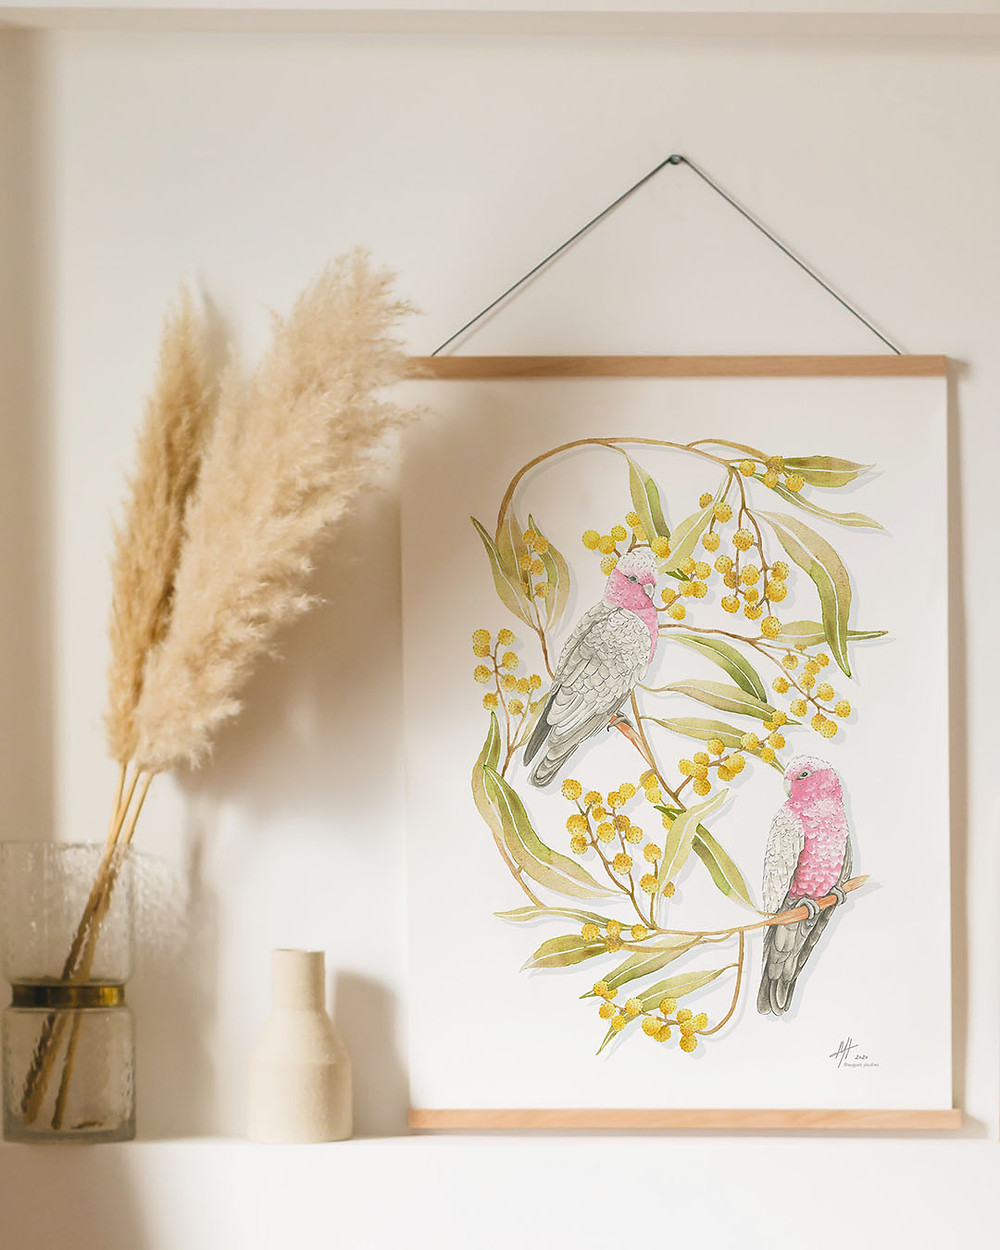 'Galahs in the Wattle Trees' Watercolour artwork by Michelle Holik